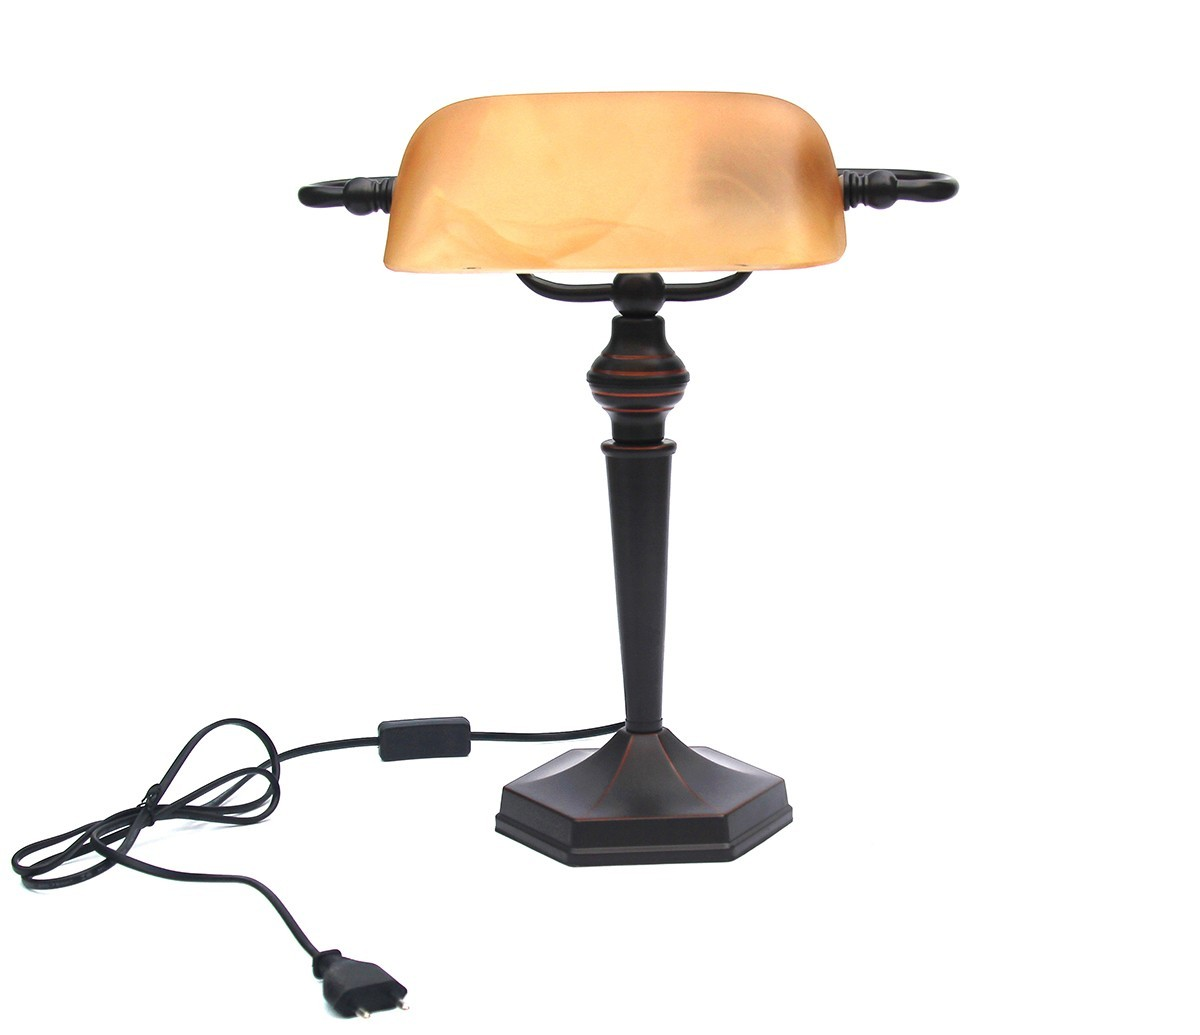 Landlite tl609 e27 max 60w desk lamp table lamp banker lamp landlite tl609 e27 max 60w desk lamp table lamp banker lamp bankers aloadofball